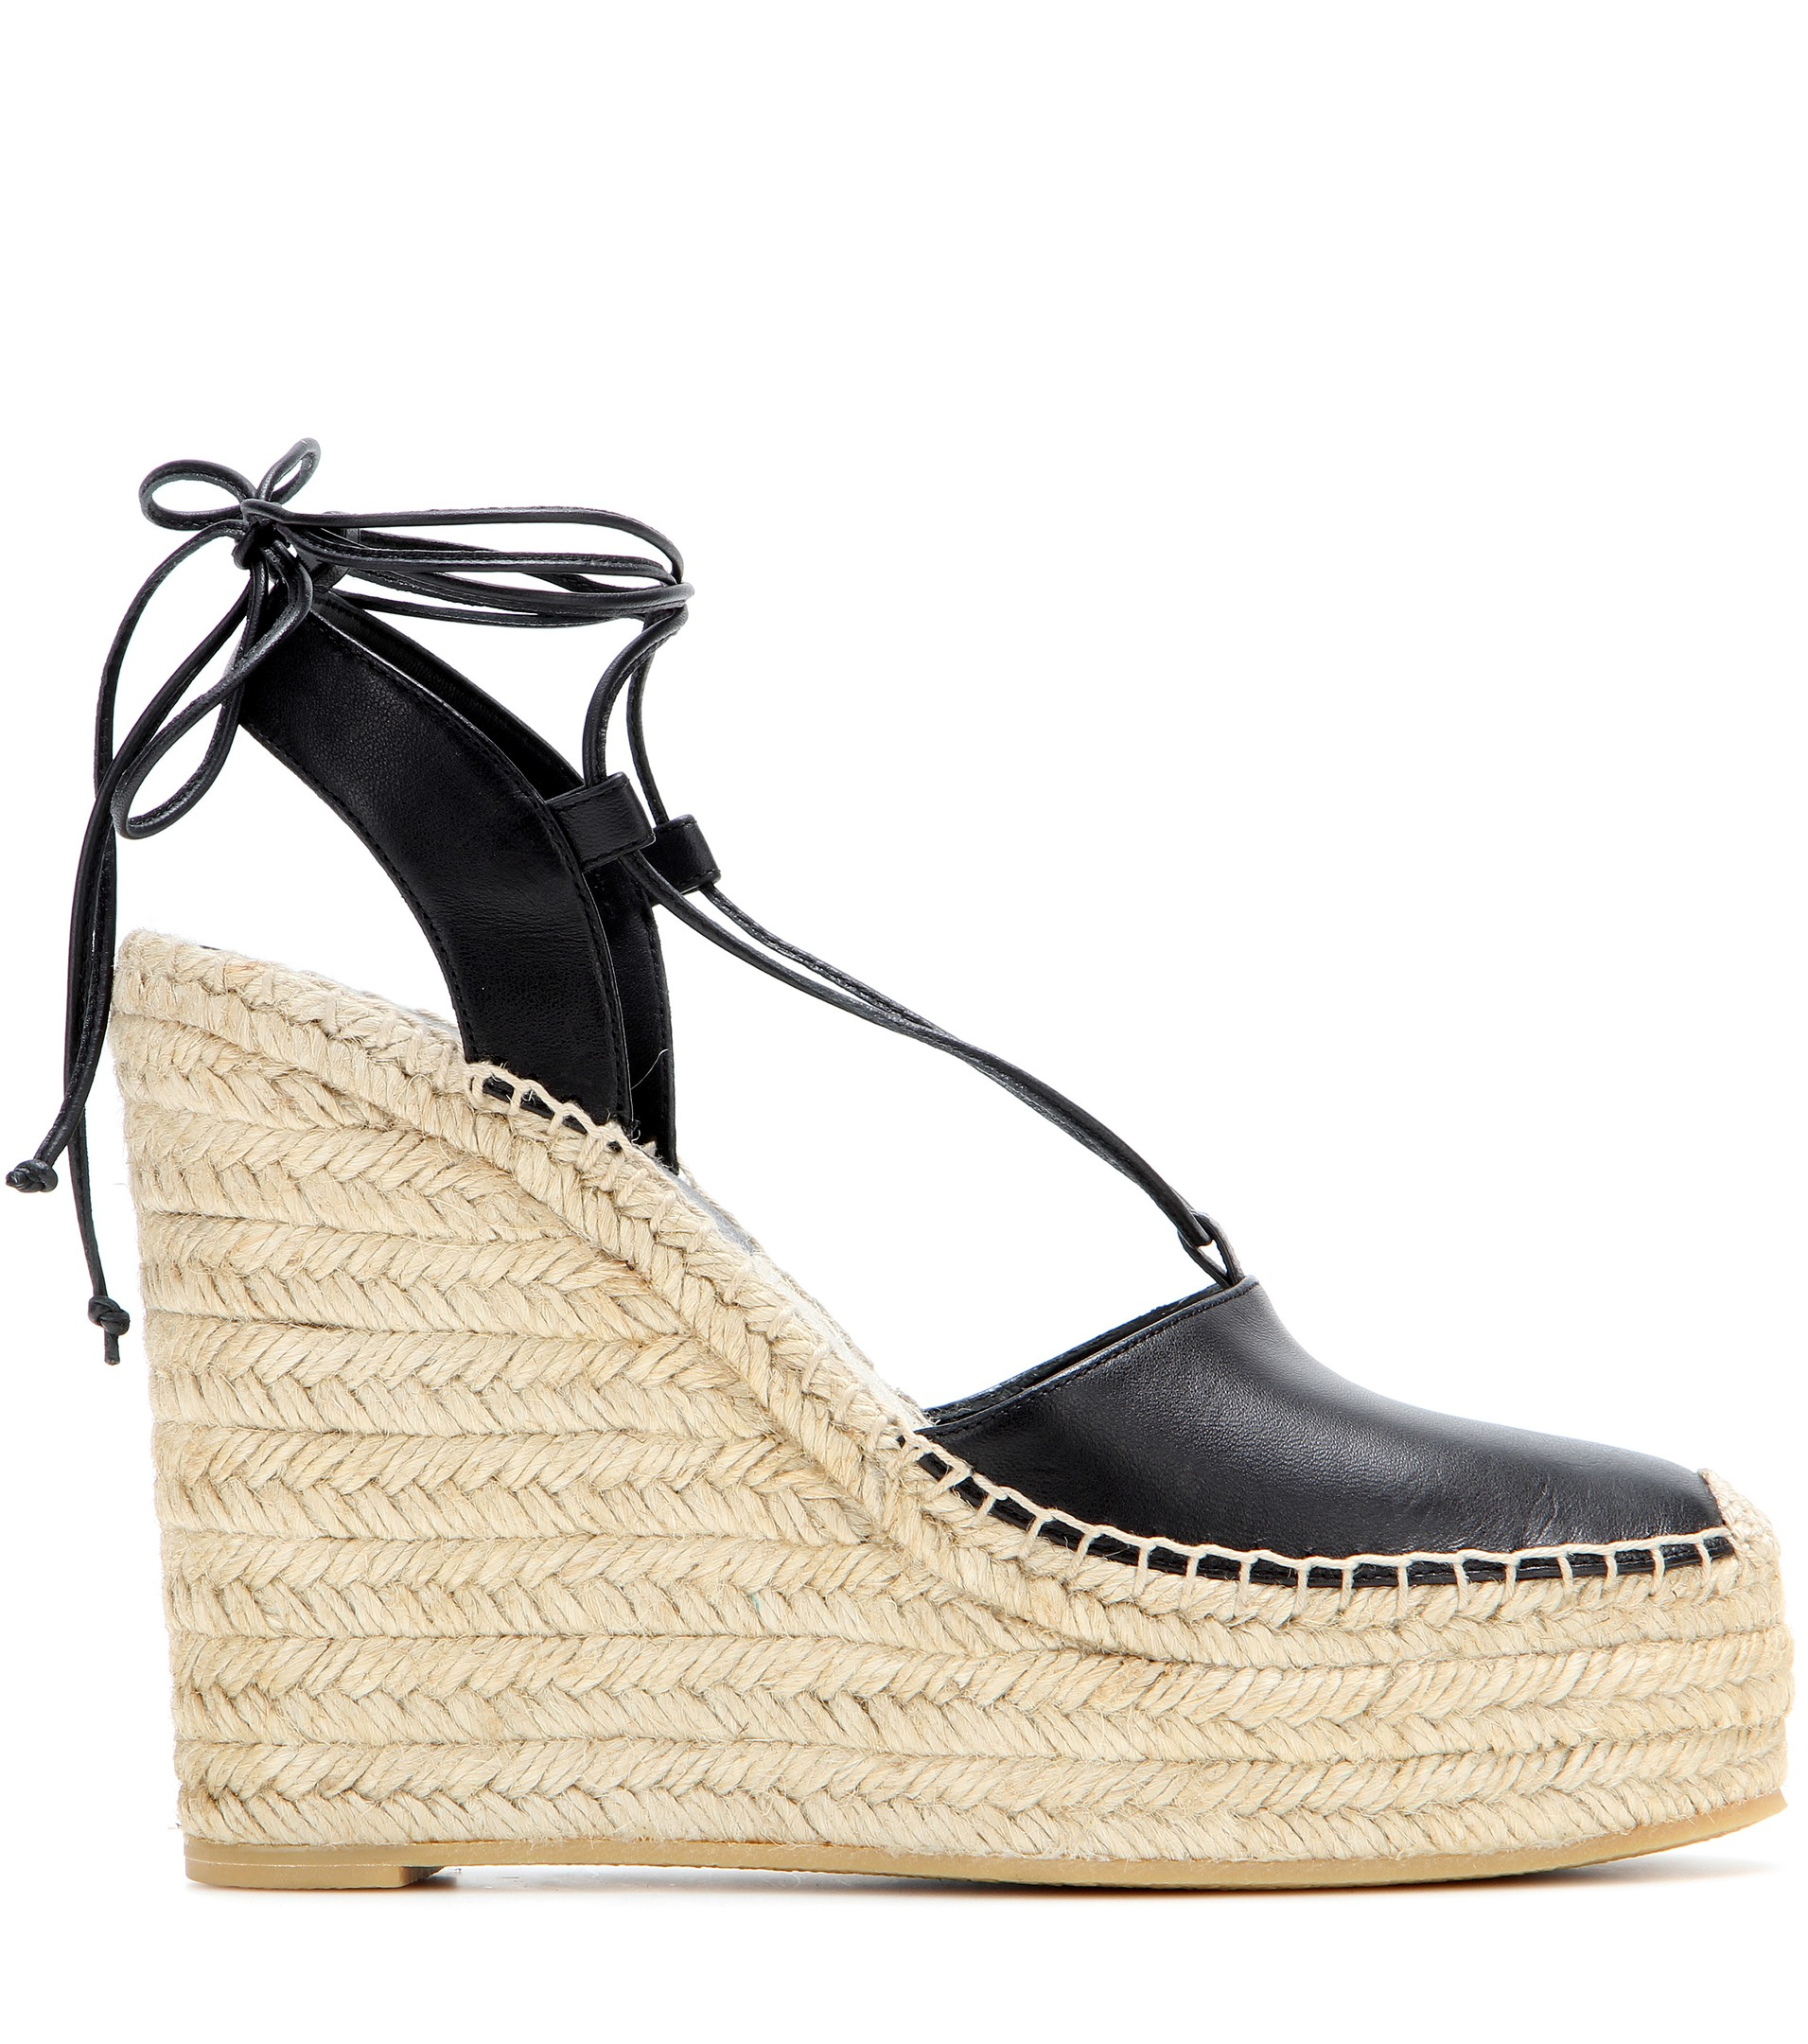 67ce9fa5960 Lyst - Saint Laurent Leather Espadrille Wedge Sandals in Natural